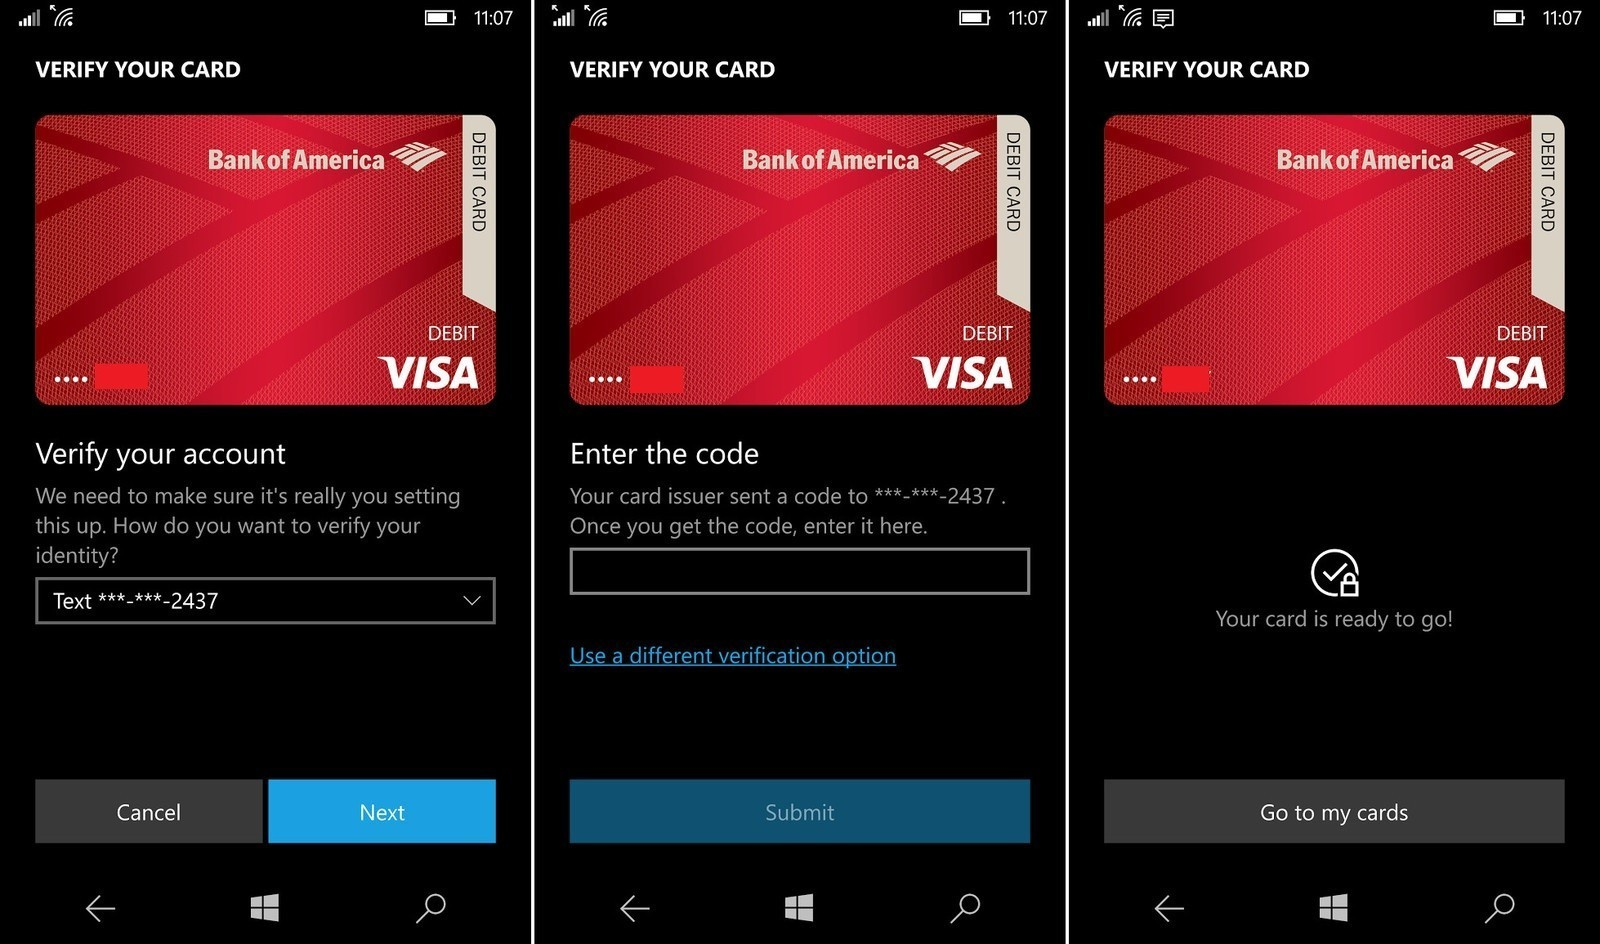 Microsoft Wallet 2.0 Brings NFC Wireless Payments To Windows 10 Mobile Devices